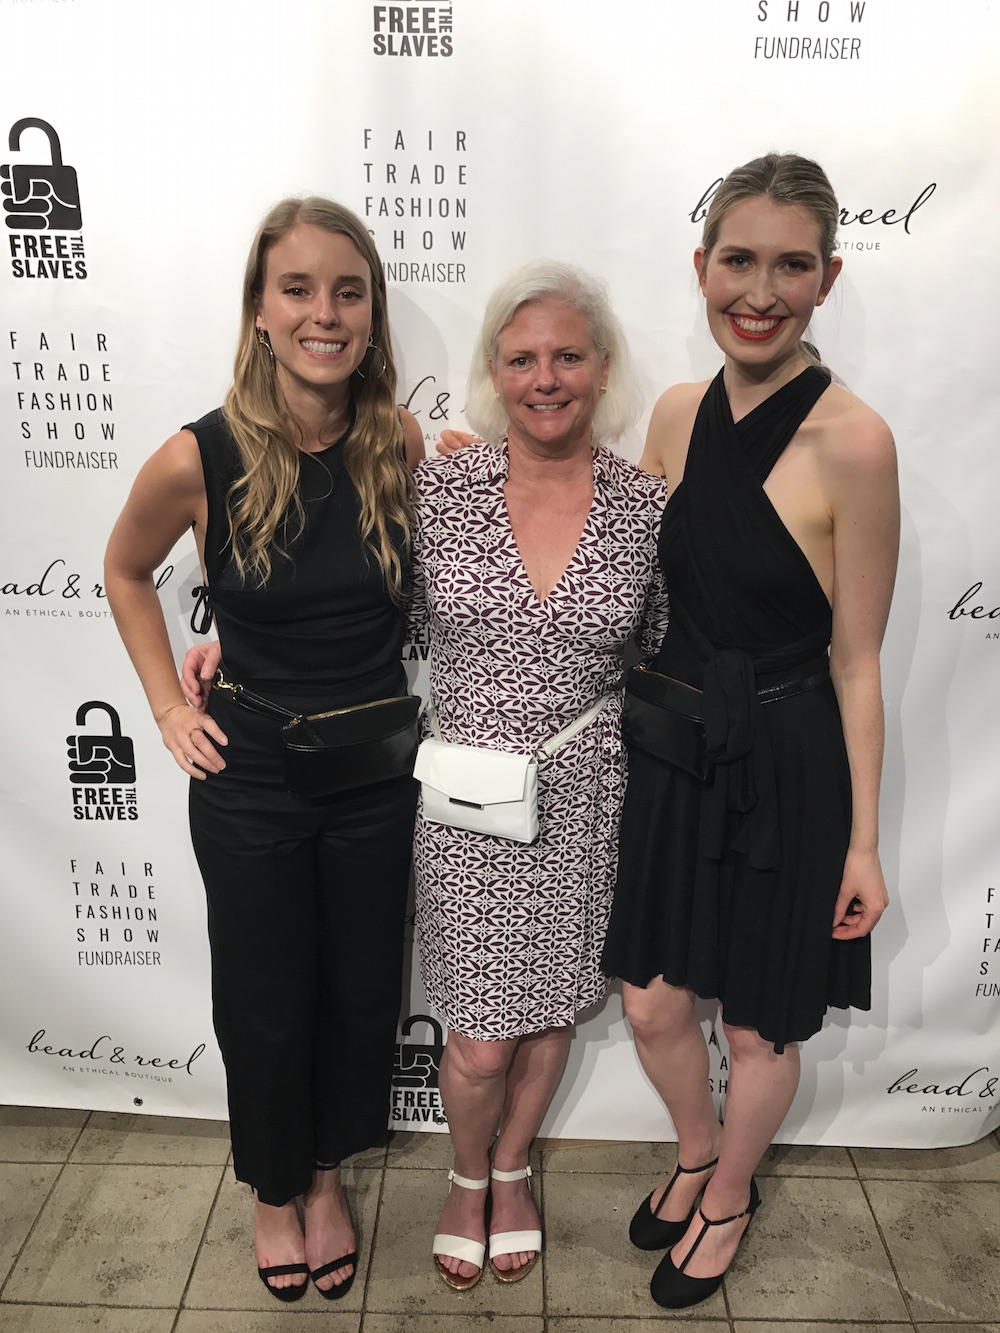 With Hipsters For Sisters Mother-Daughter Team (Rachel + Debra).  I love the female-empowering belt bags that these ladies create, which are all vegan, made in LA, and use sustainable materials such as recycled fibres, organic cotton & hemp.